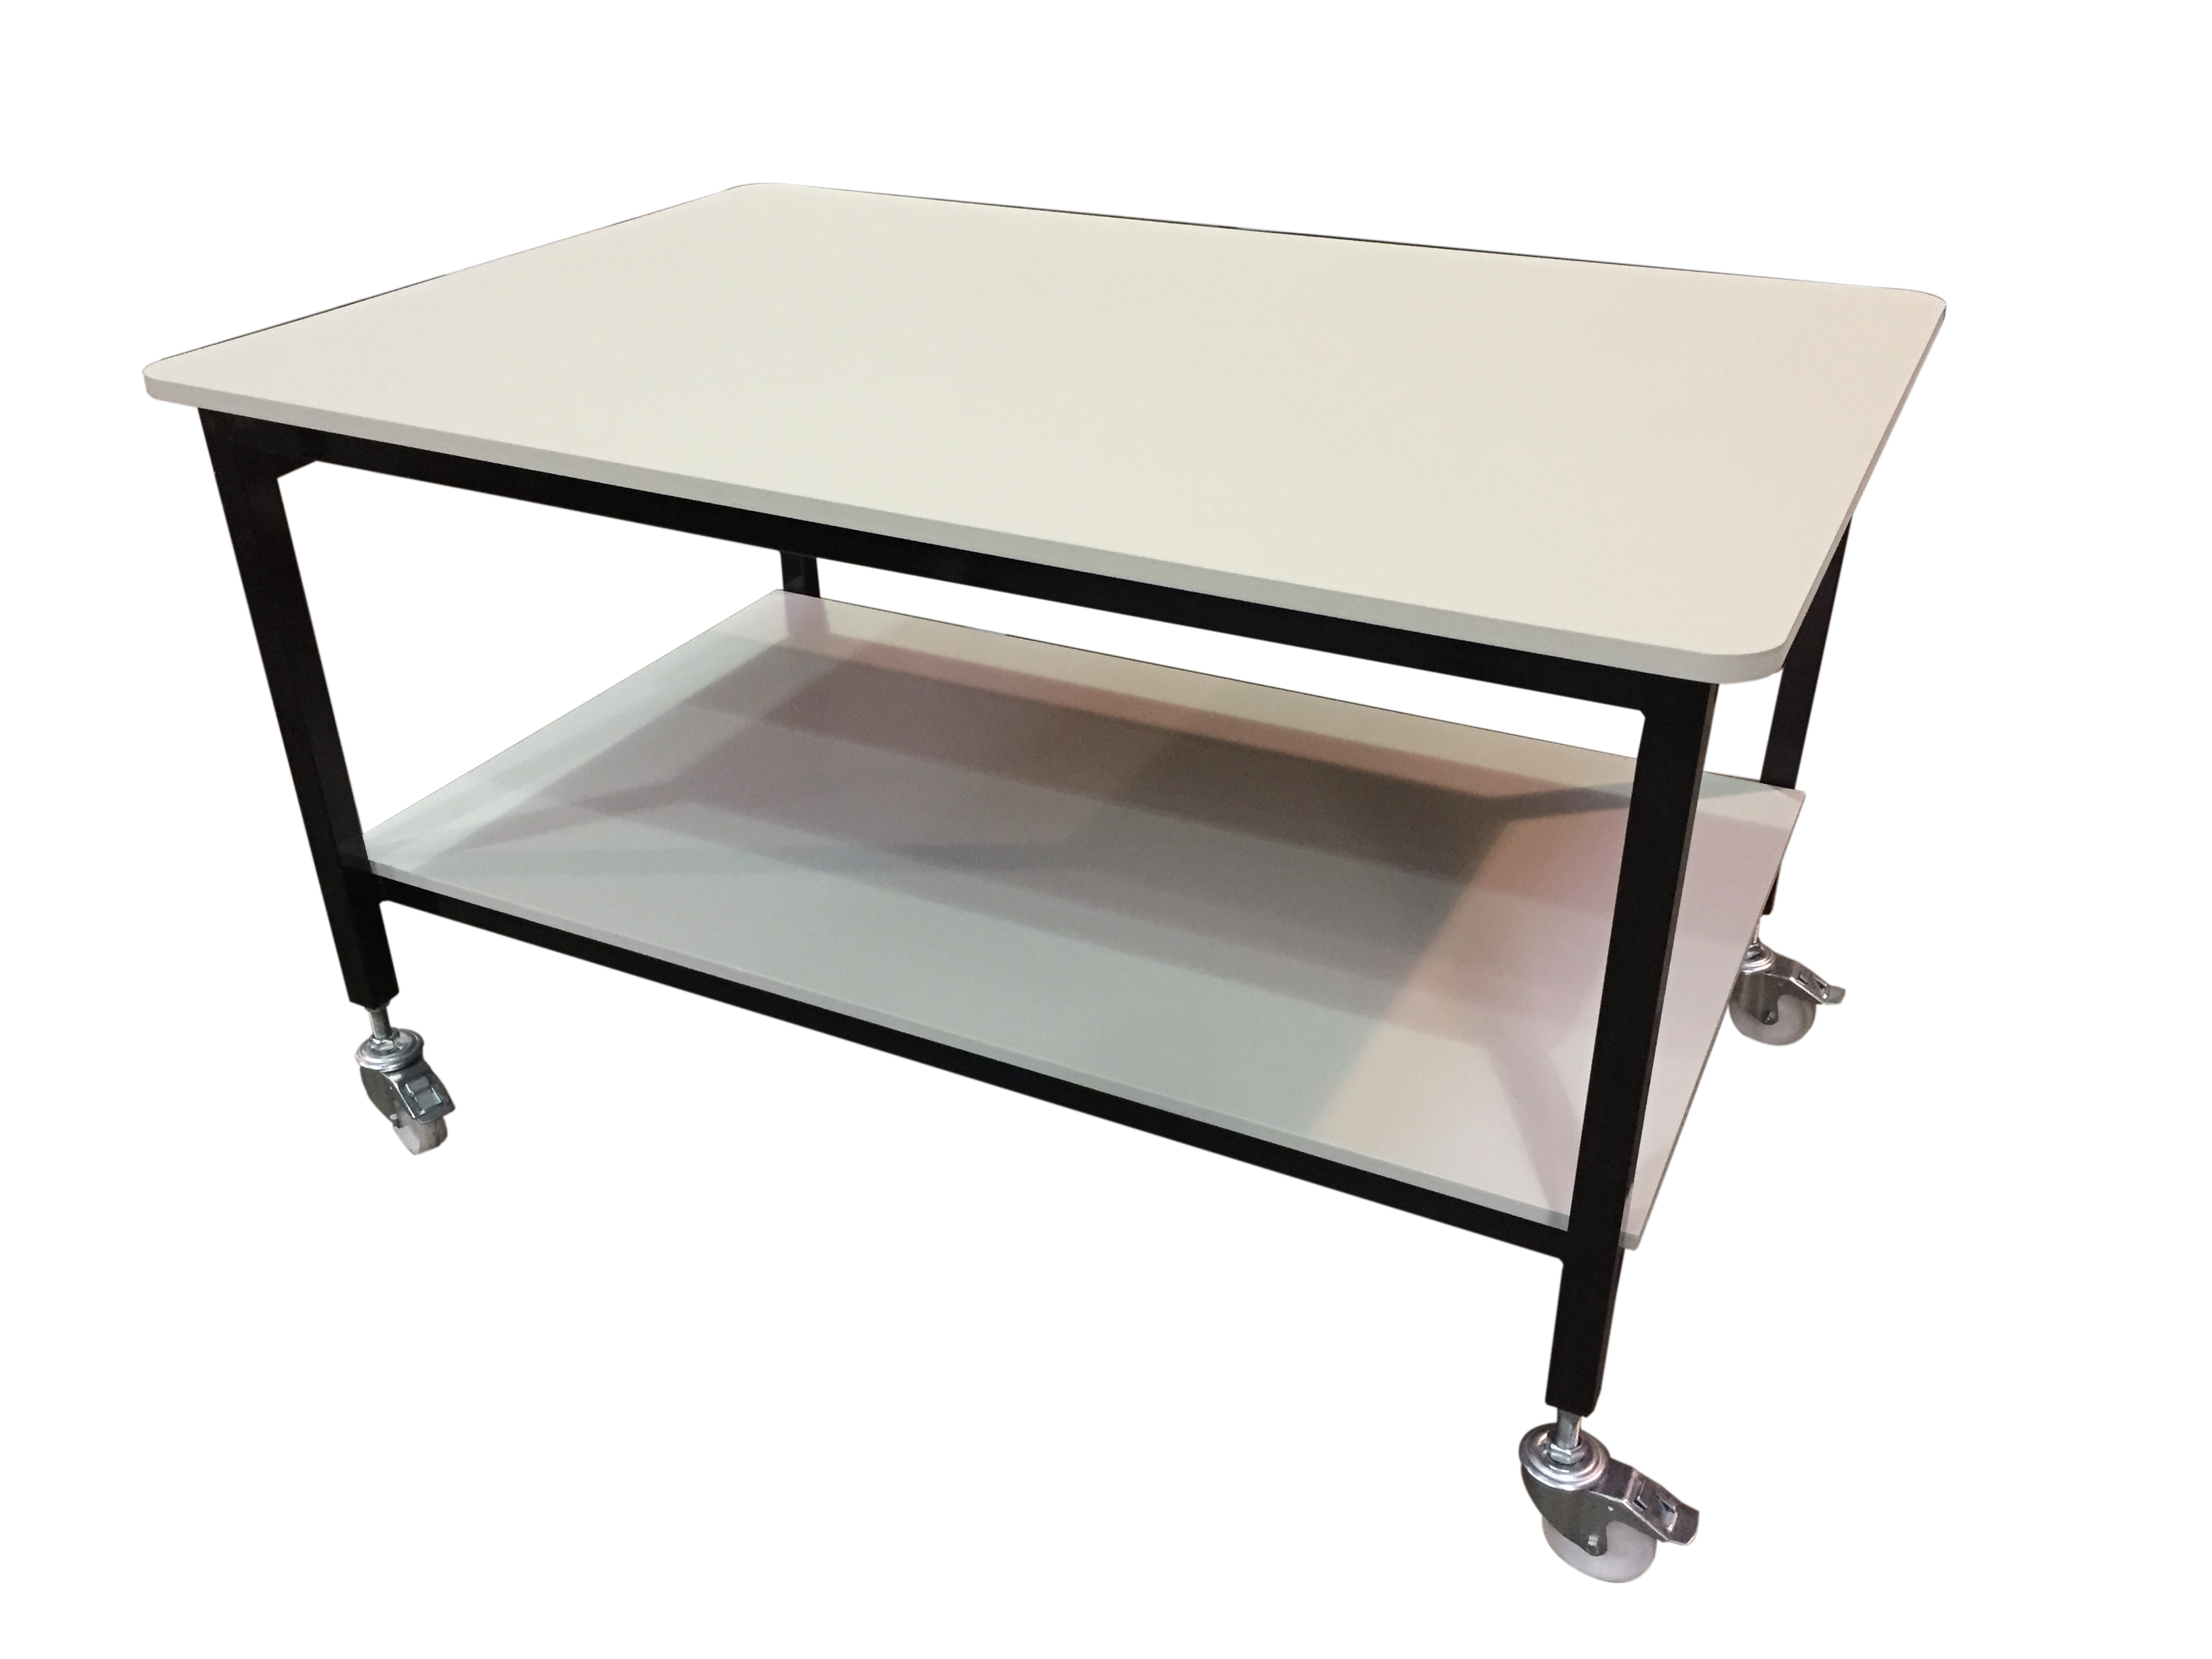 Mobile fabric cutting table